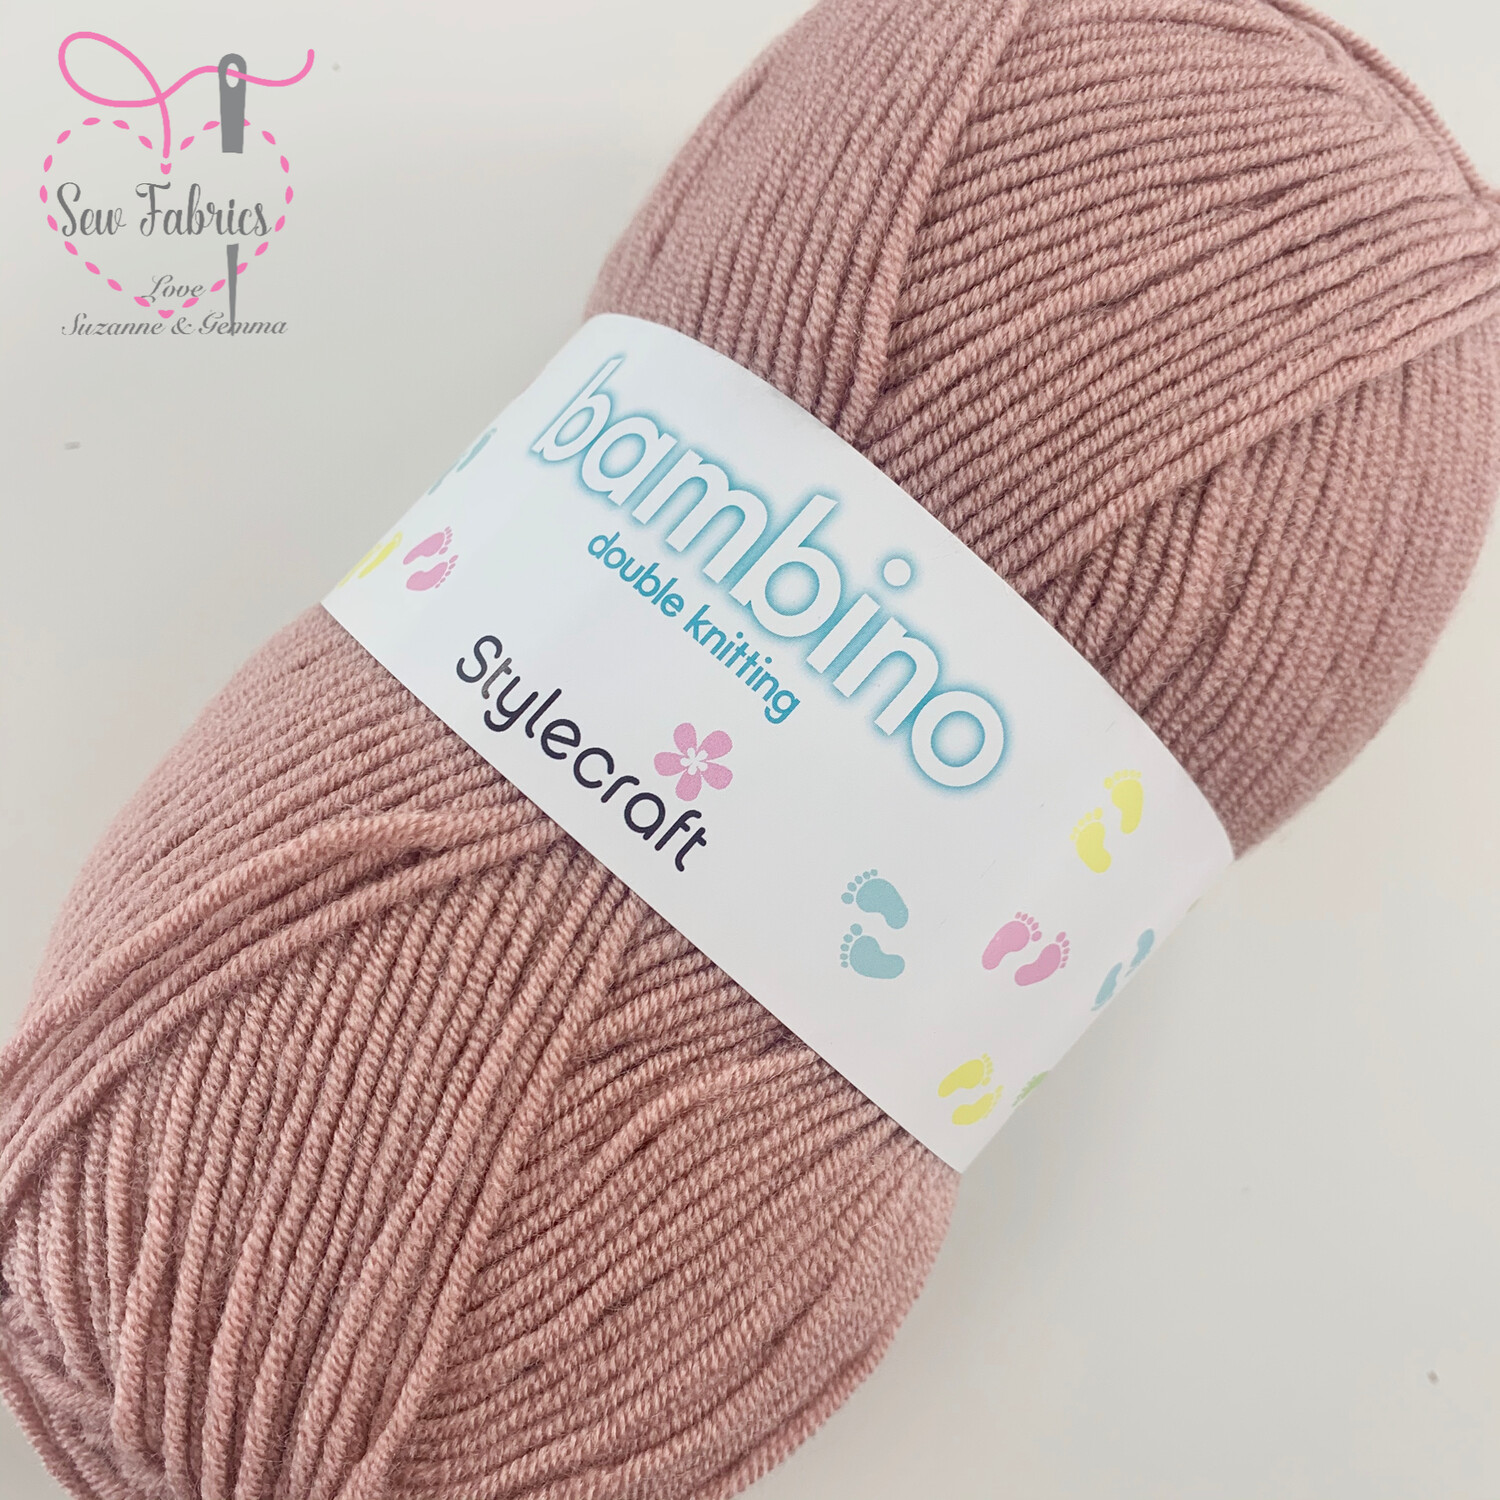 Stylecraft Bambino DK 100% Premium Acrylic Wool - Vintage Pink Yarn  Buy More Than 1 Ball & Get 30% Off With Code STYLE30